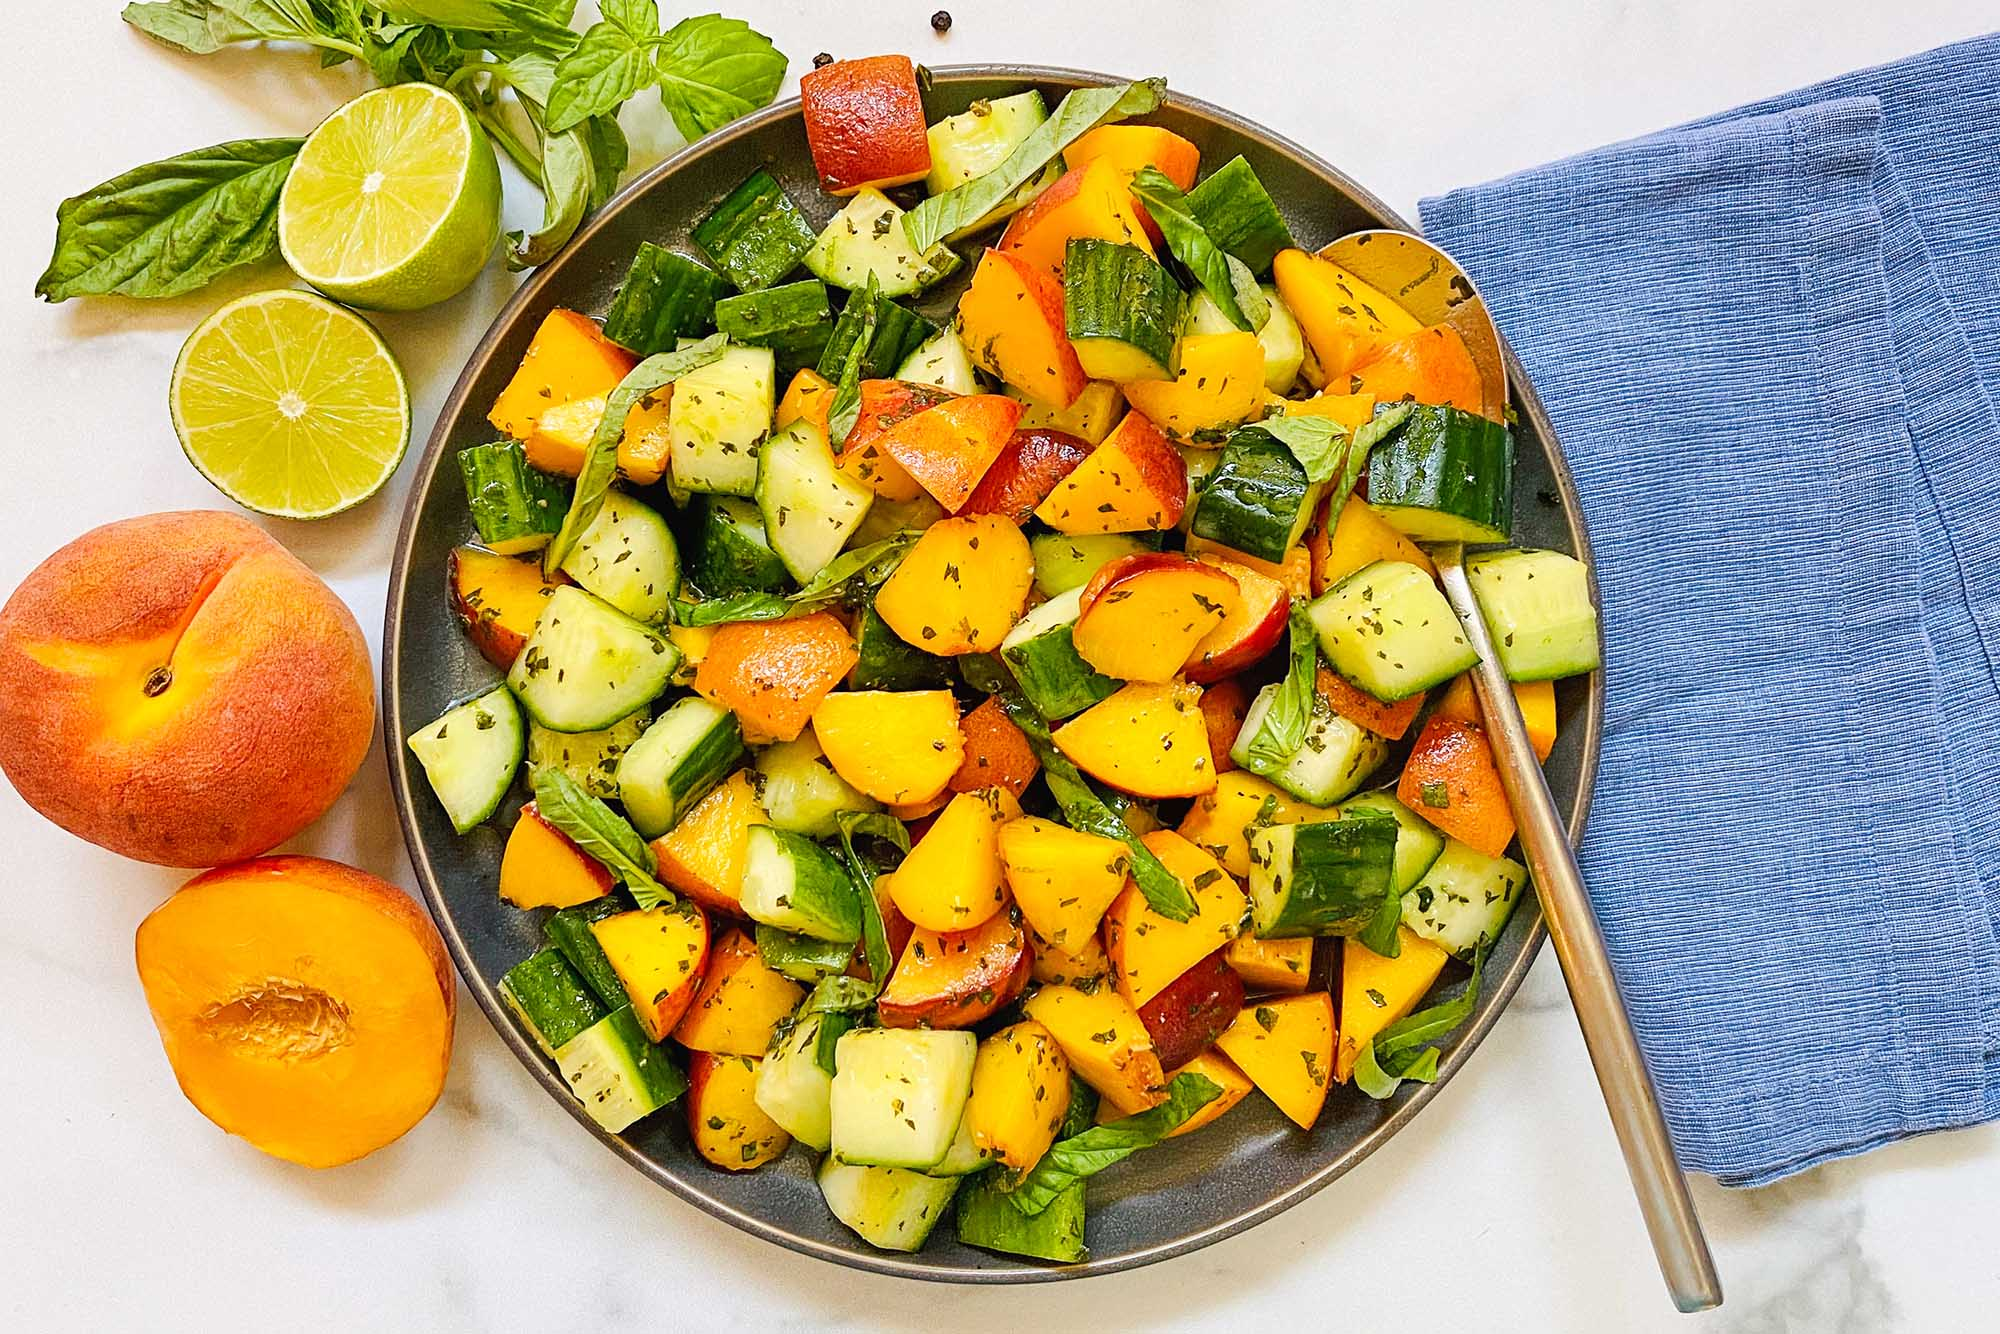 Summer peach and cucumber salad in a bowl with a serving spoon. A blue linen is to the right and peaches, limes and basil are to the left of the bowl.